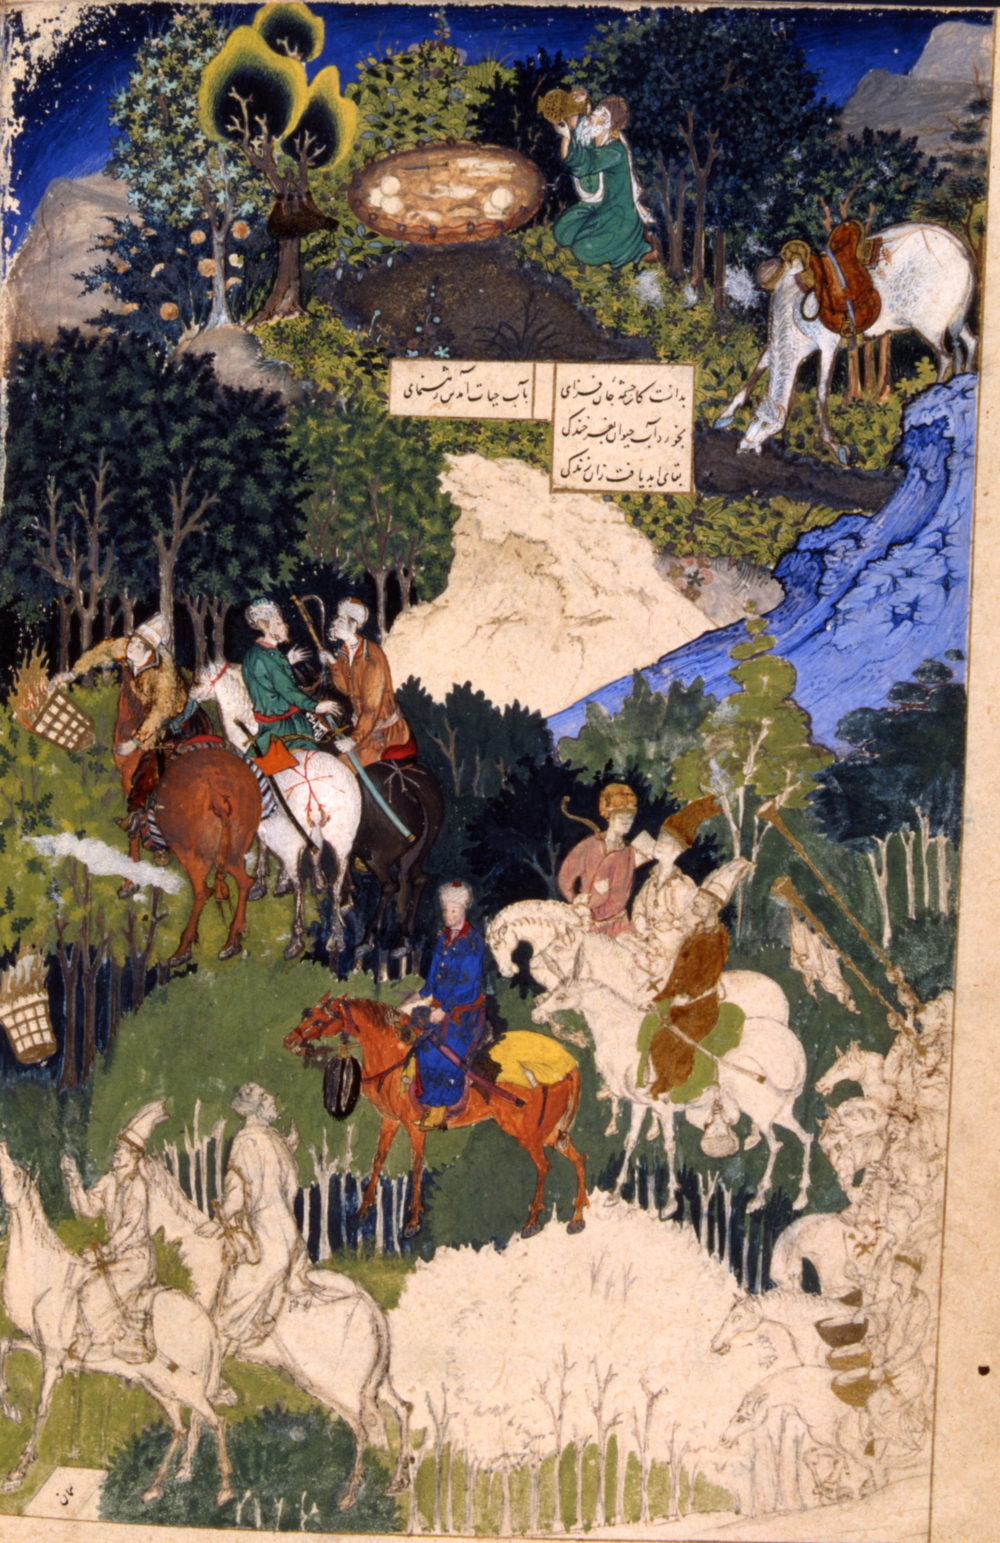 Khizr discovers the Fountain of Life. Nizami's Khamsa. Istanbul, end of the fifteenth century. Topkapi Palace Library, H. 781, fol. 279b.